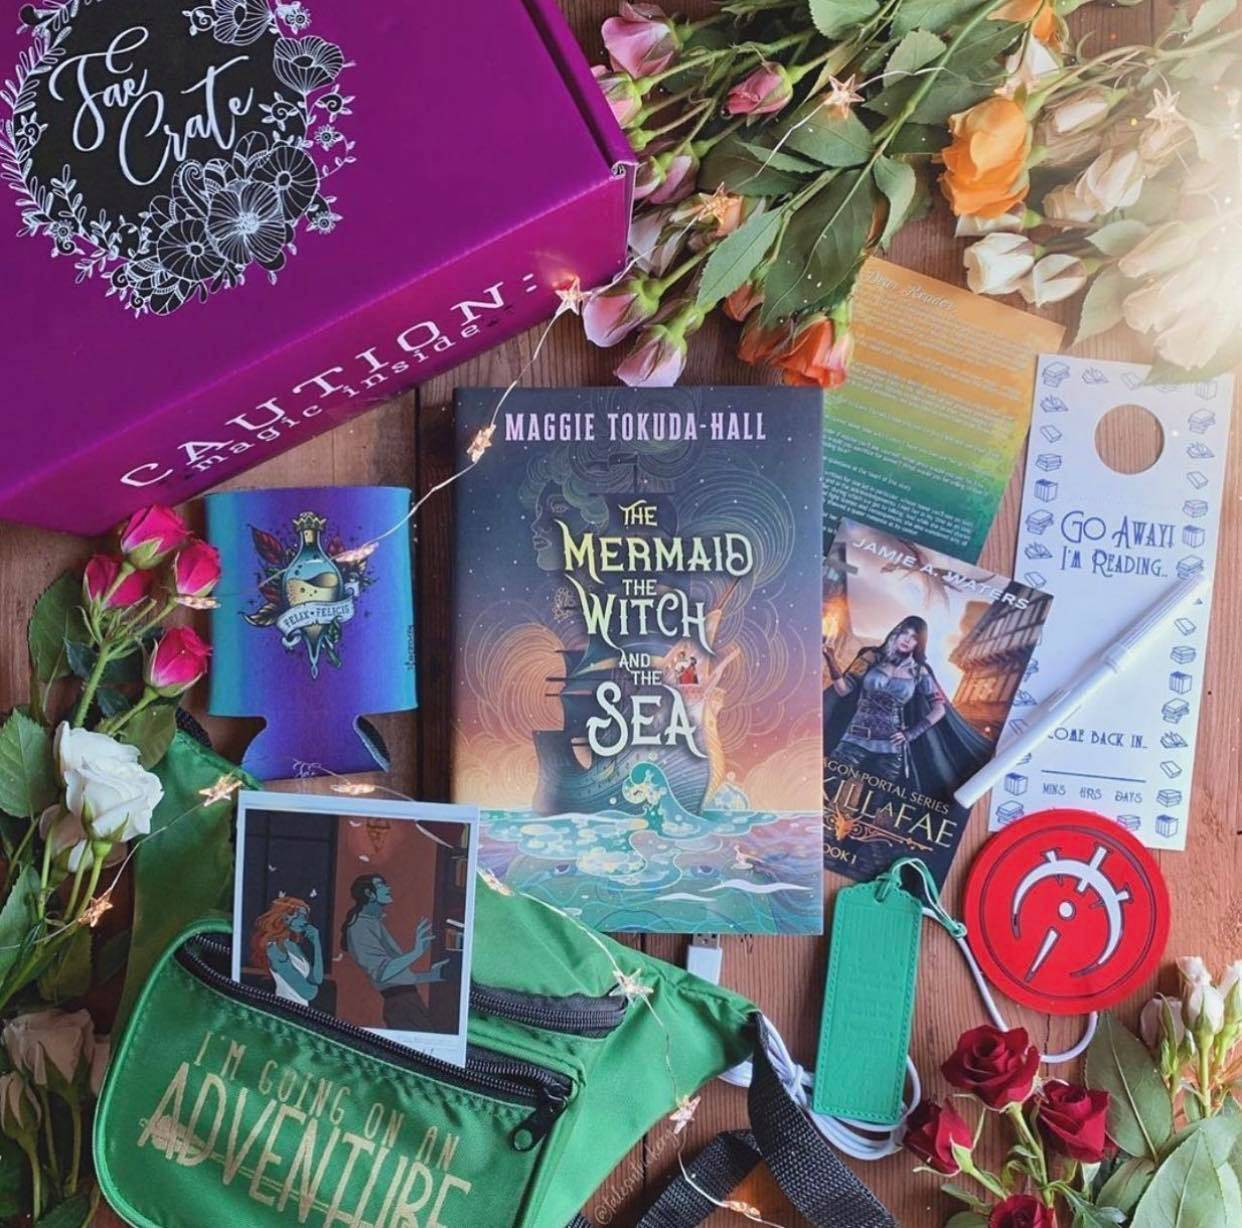 May 2020 Book Wyrm box theme includes Leather Imprinted Bookmark, Felix Felicis Koozie, Doorhanger Dry Erase Memo Board, USB Mug/Candle Warmer, Fanny Pack and Extender, Stranger the Dreamer Polaroid, Sorcery of Thorns' Elizabeth as Aethena, The Wrath and Dawn Shirt, E-Book Download of To Kill a Fae by Jamie A. Waters, and The Mermaid, The Witch, and The Sea by Maggie Tokuda-Hall.